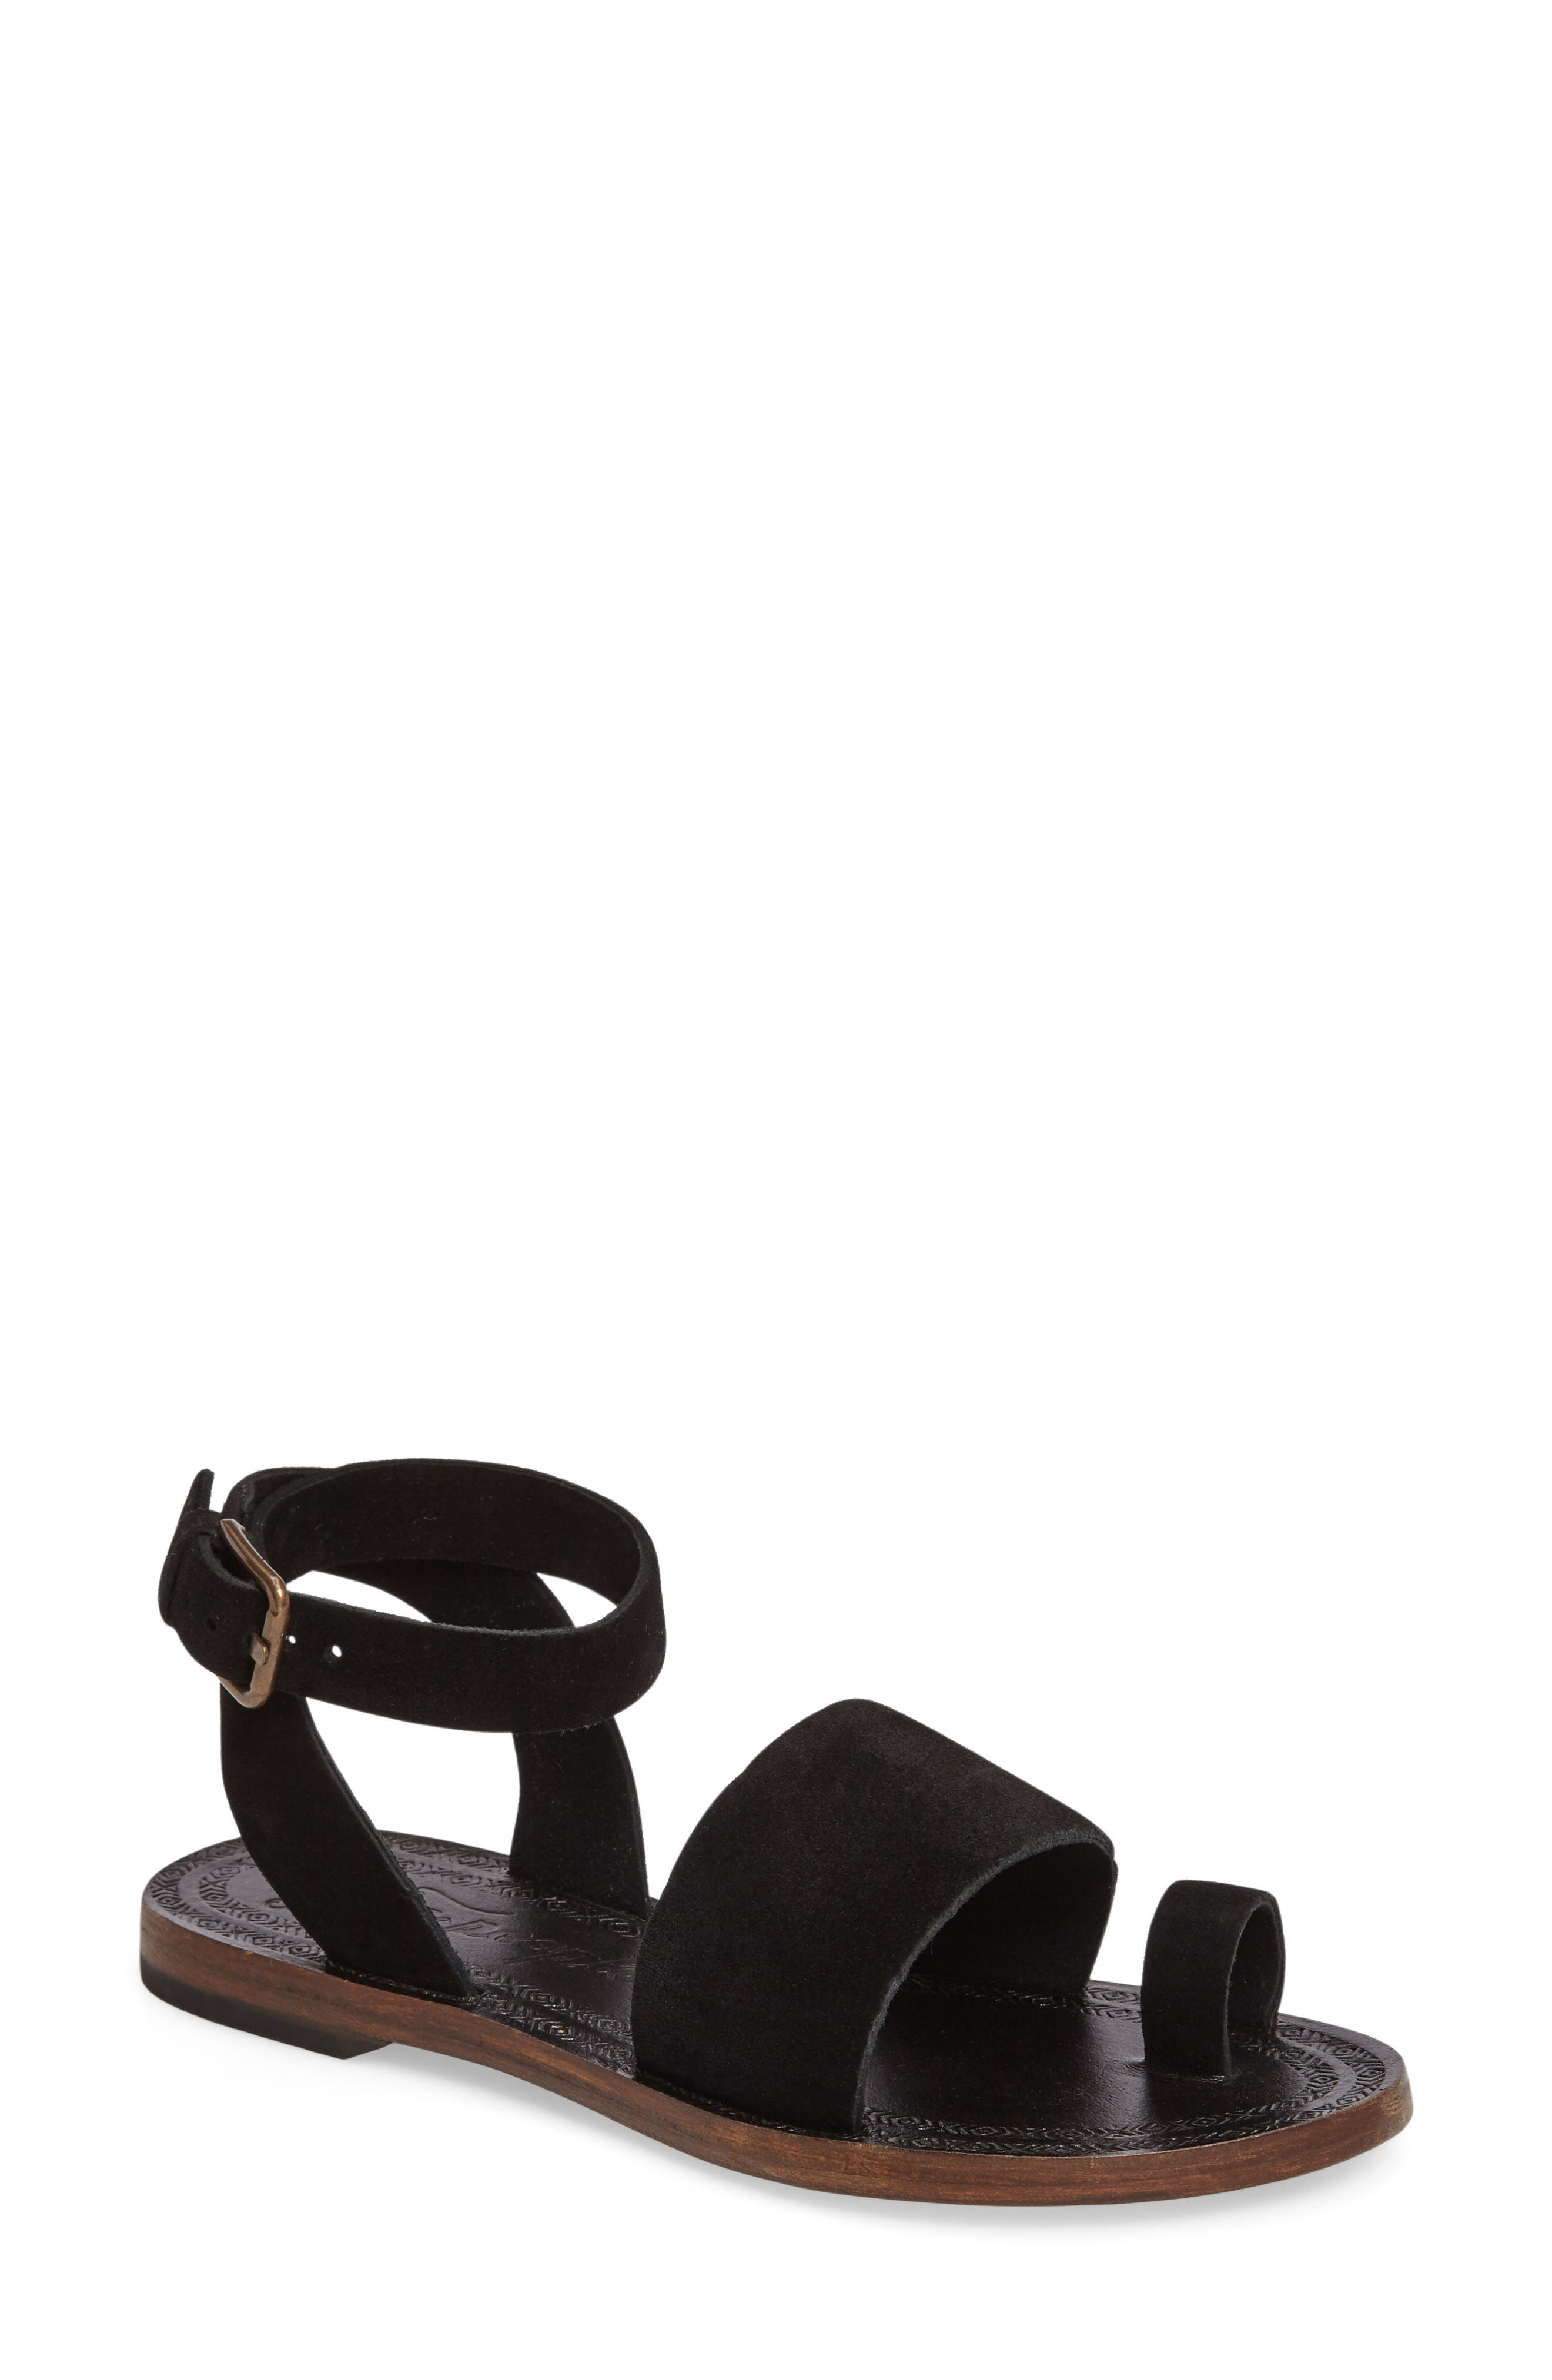 Torrence Ankle Wrap Sandal,                         Main,                         color, 001